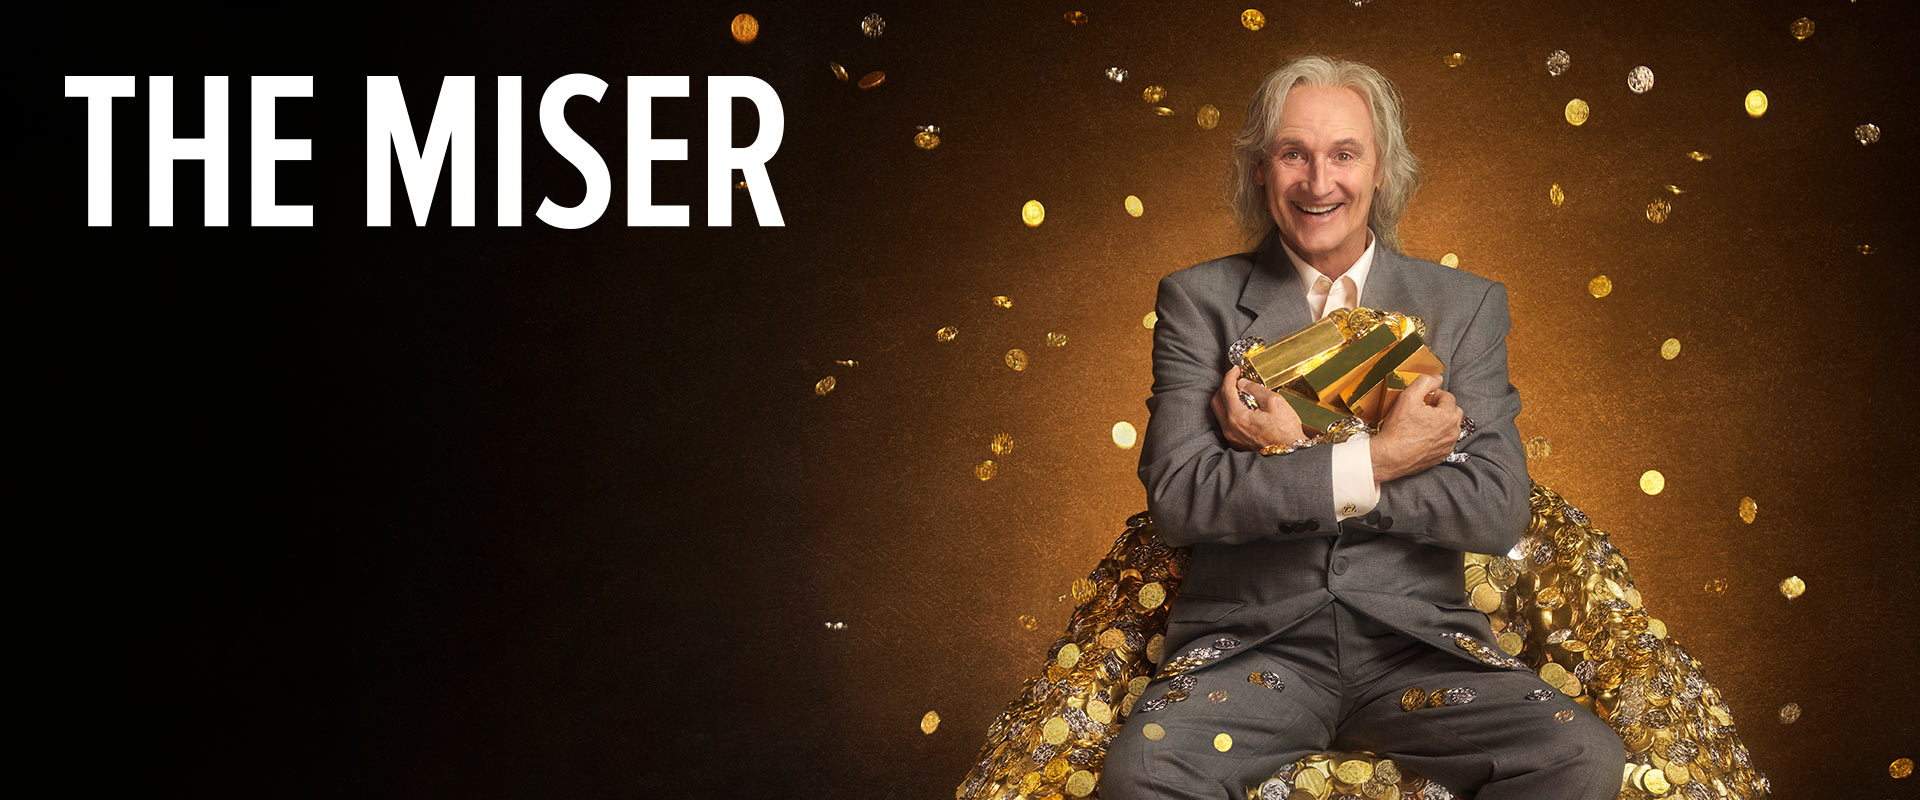 Image of a man in his 60s, sitting on a pile of gold, grinning.